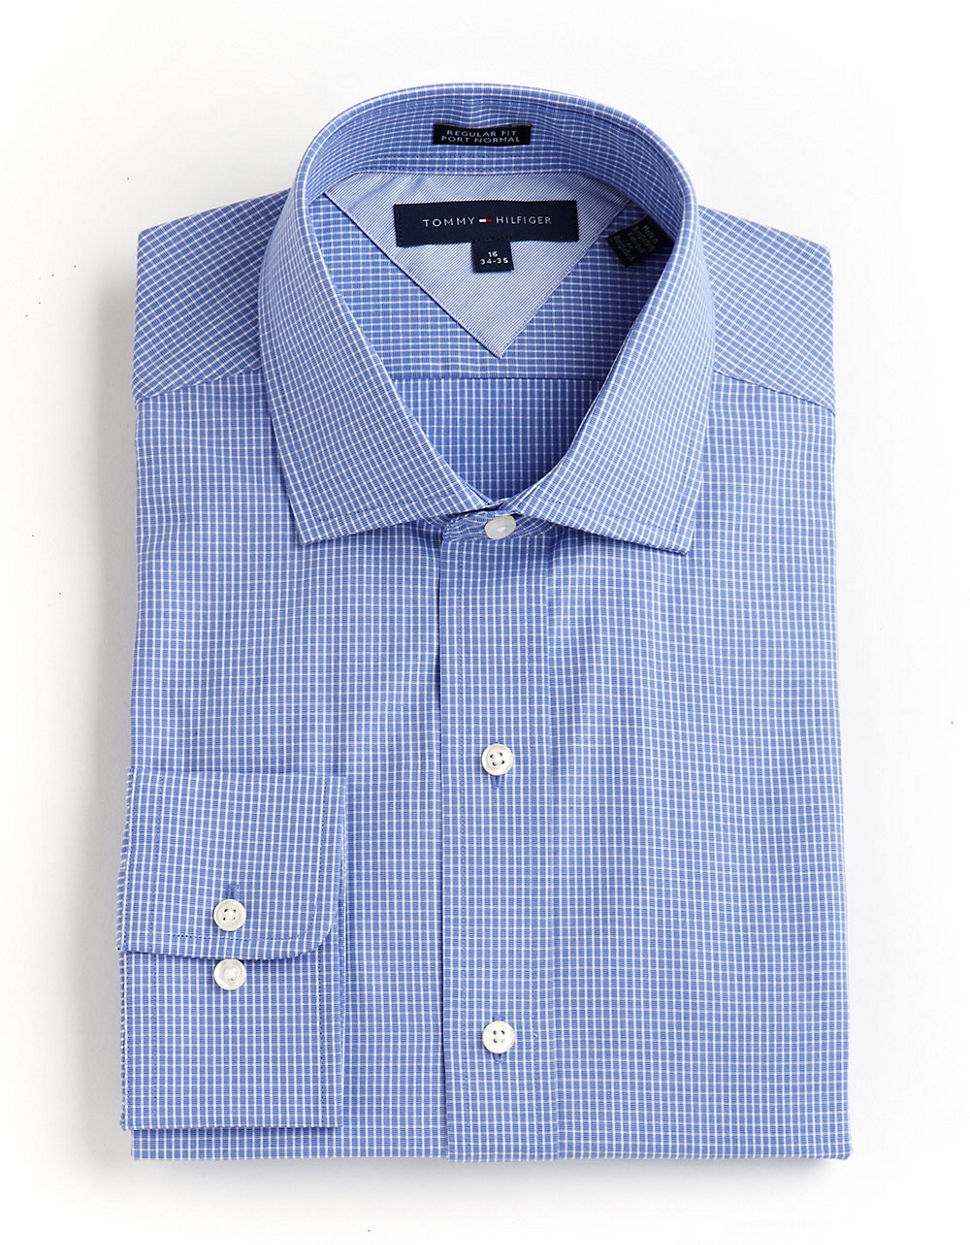 Tommy hilfiger Tommy Hilfiger Ls Regular Fit Dress Shirt blue 175  32/33